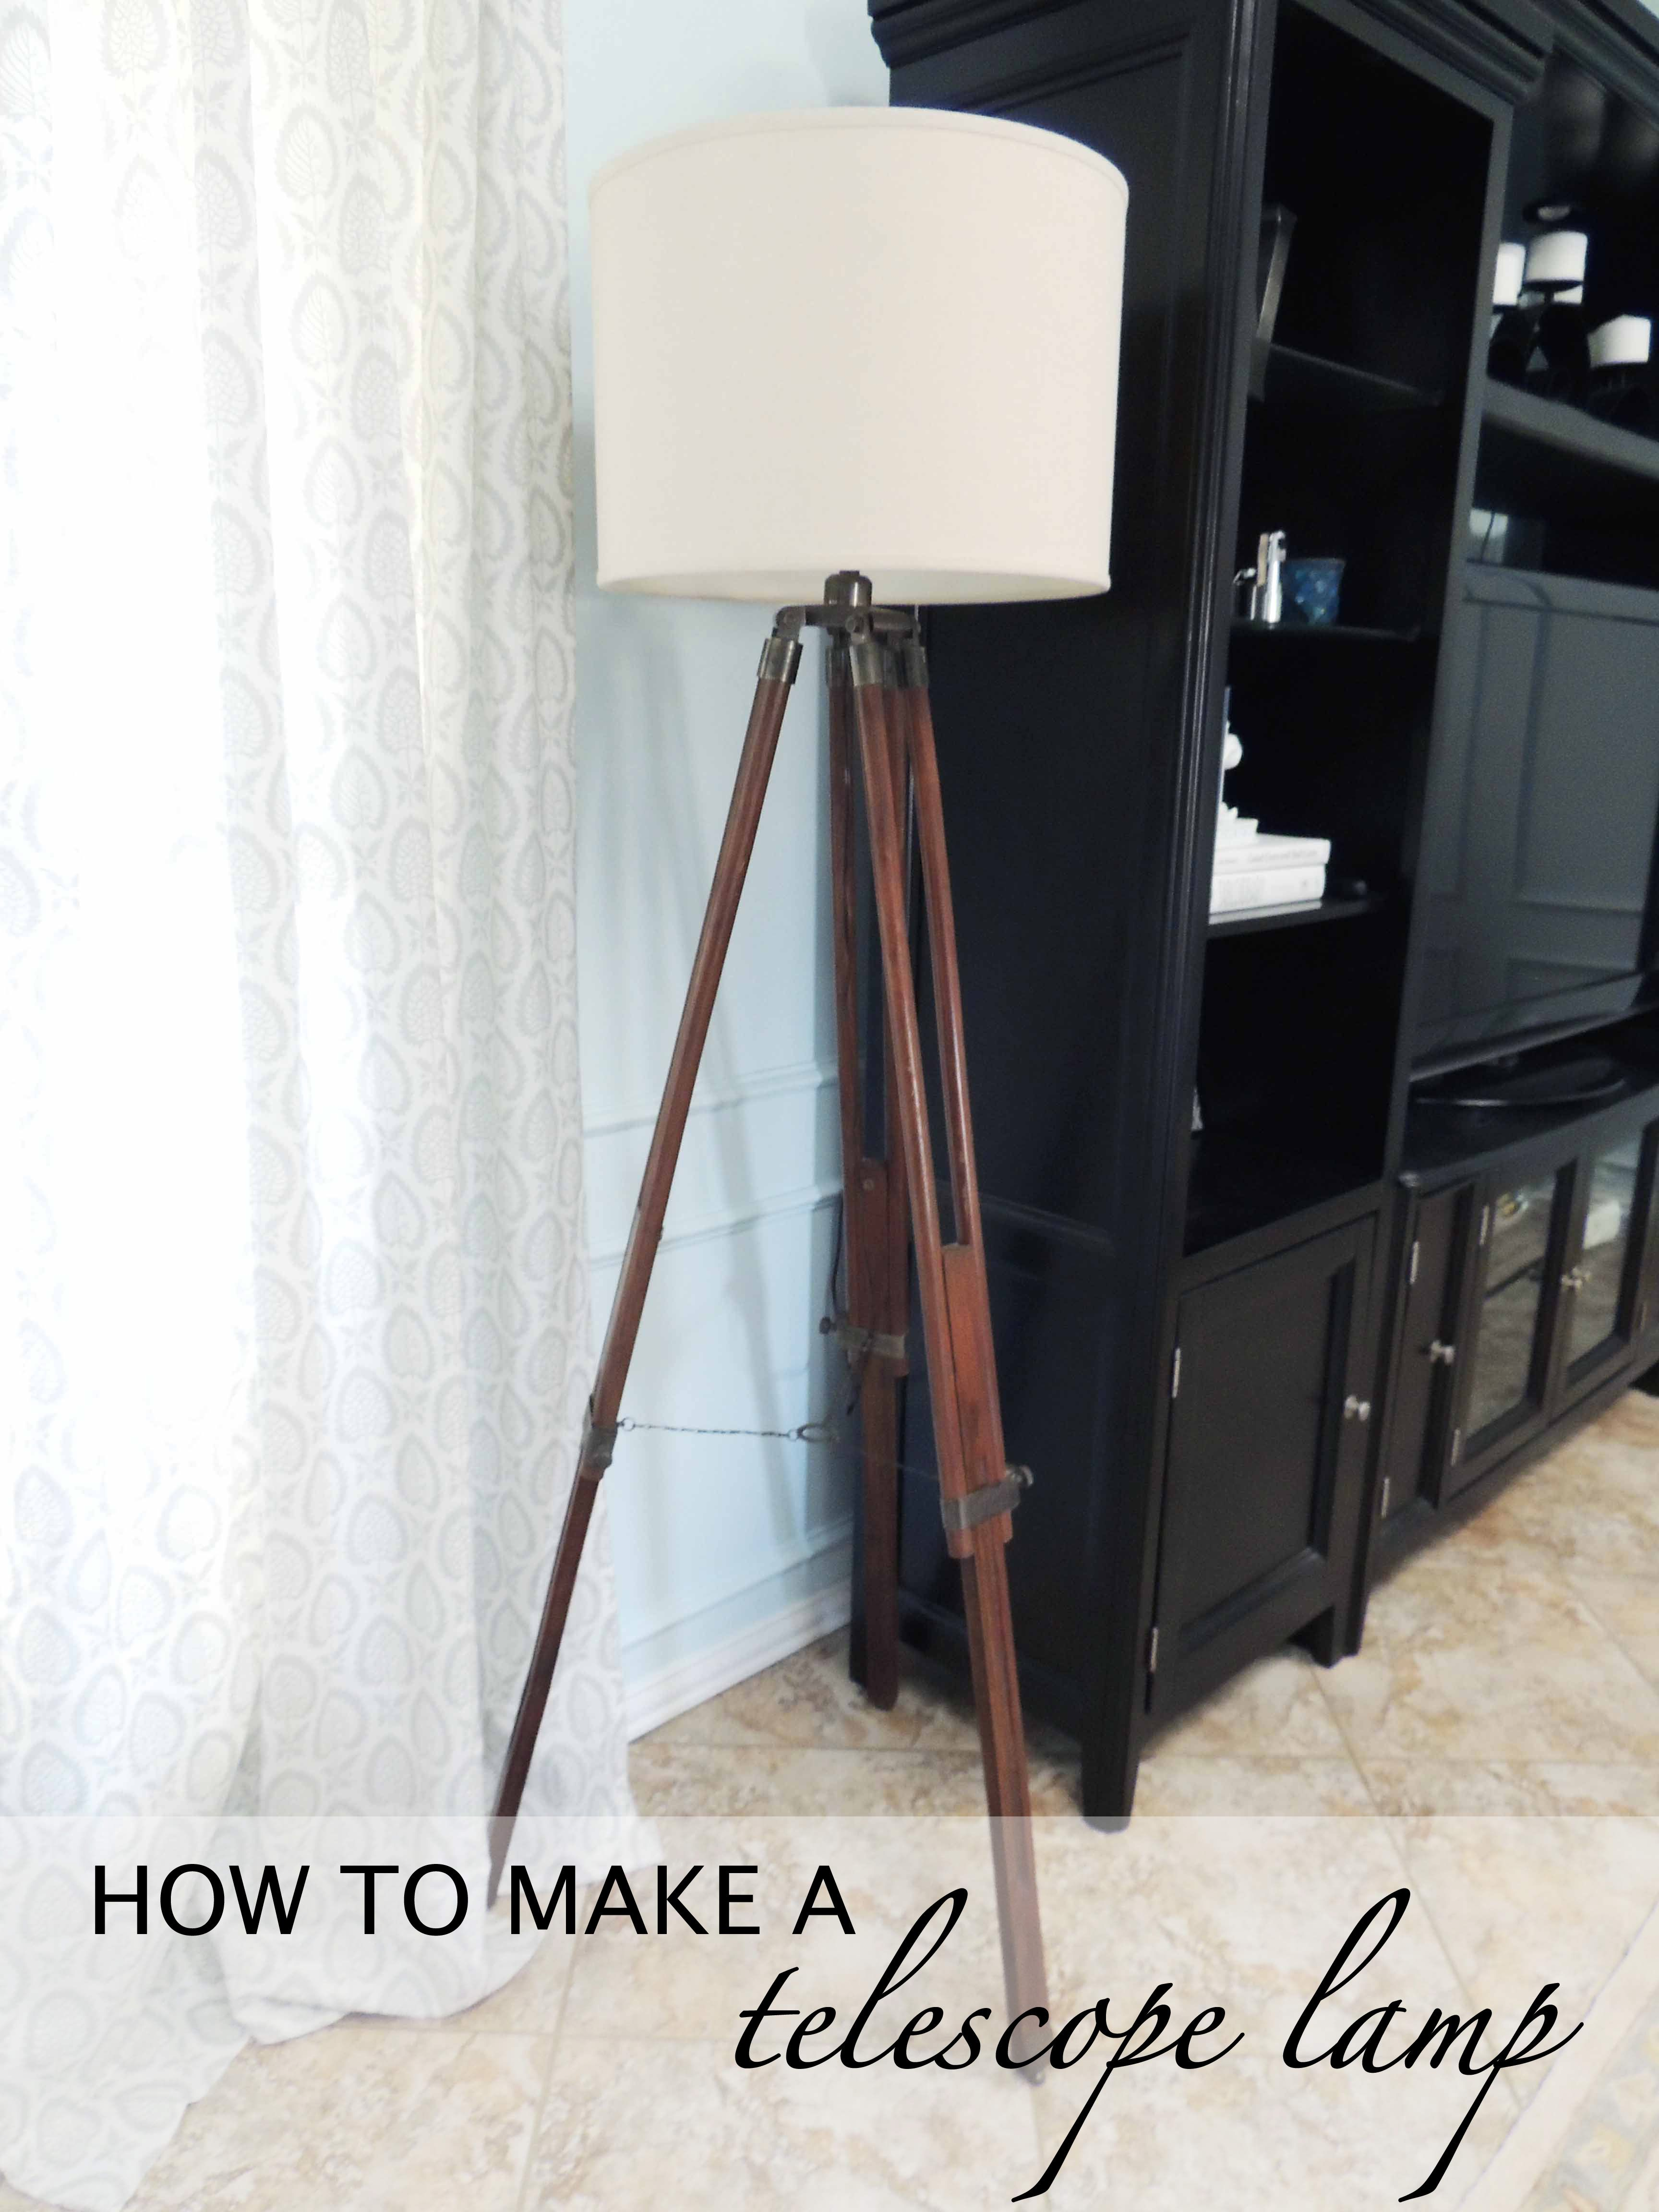 Restoration Hardware Lamp Knock Off: How To Make A Telescope Lamp